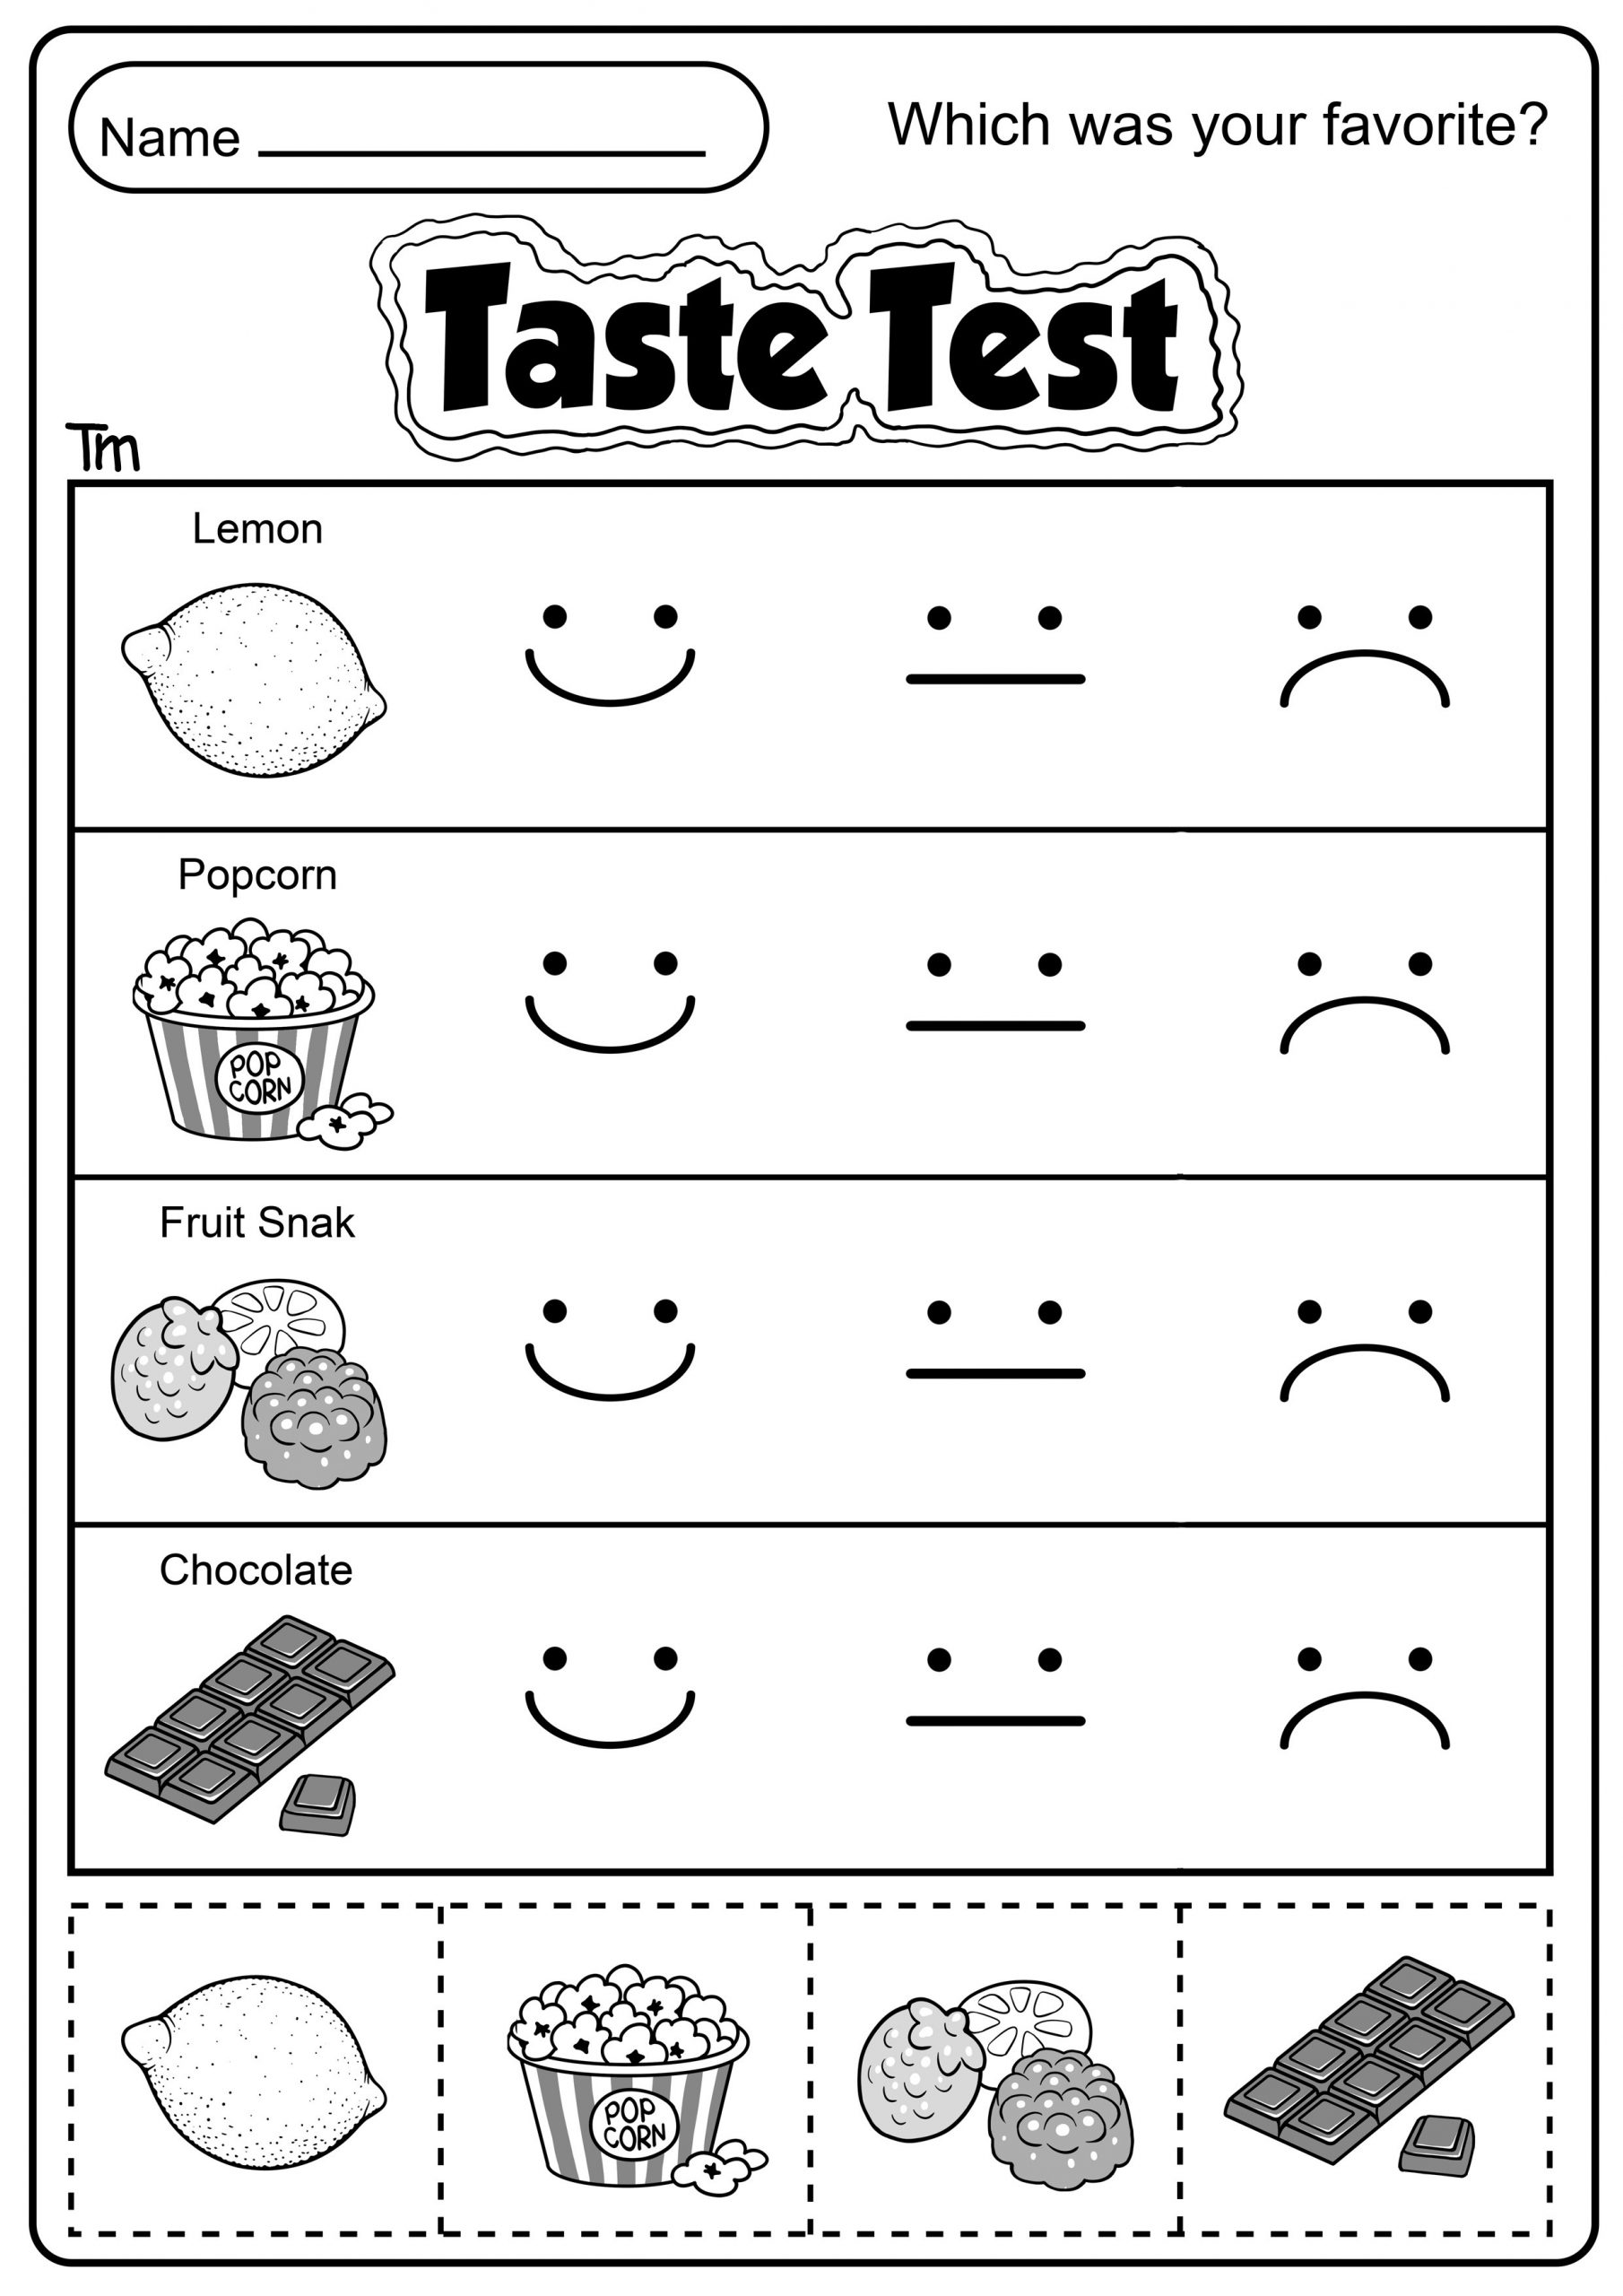 5 Senses Worksheet Preschool the Five Senses Taste Test Teachersmag